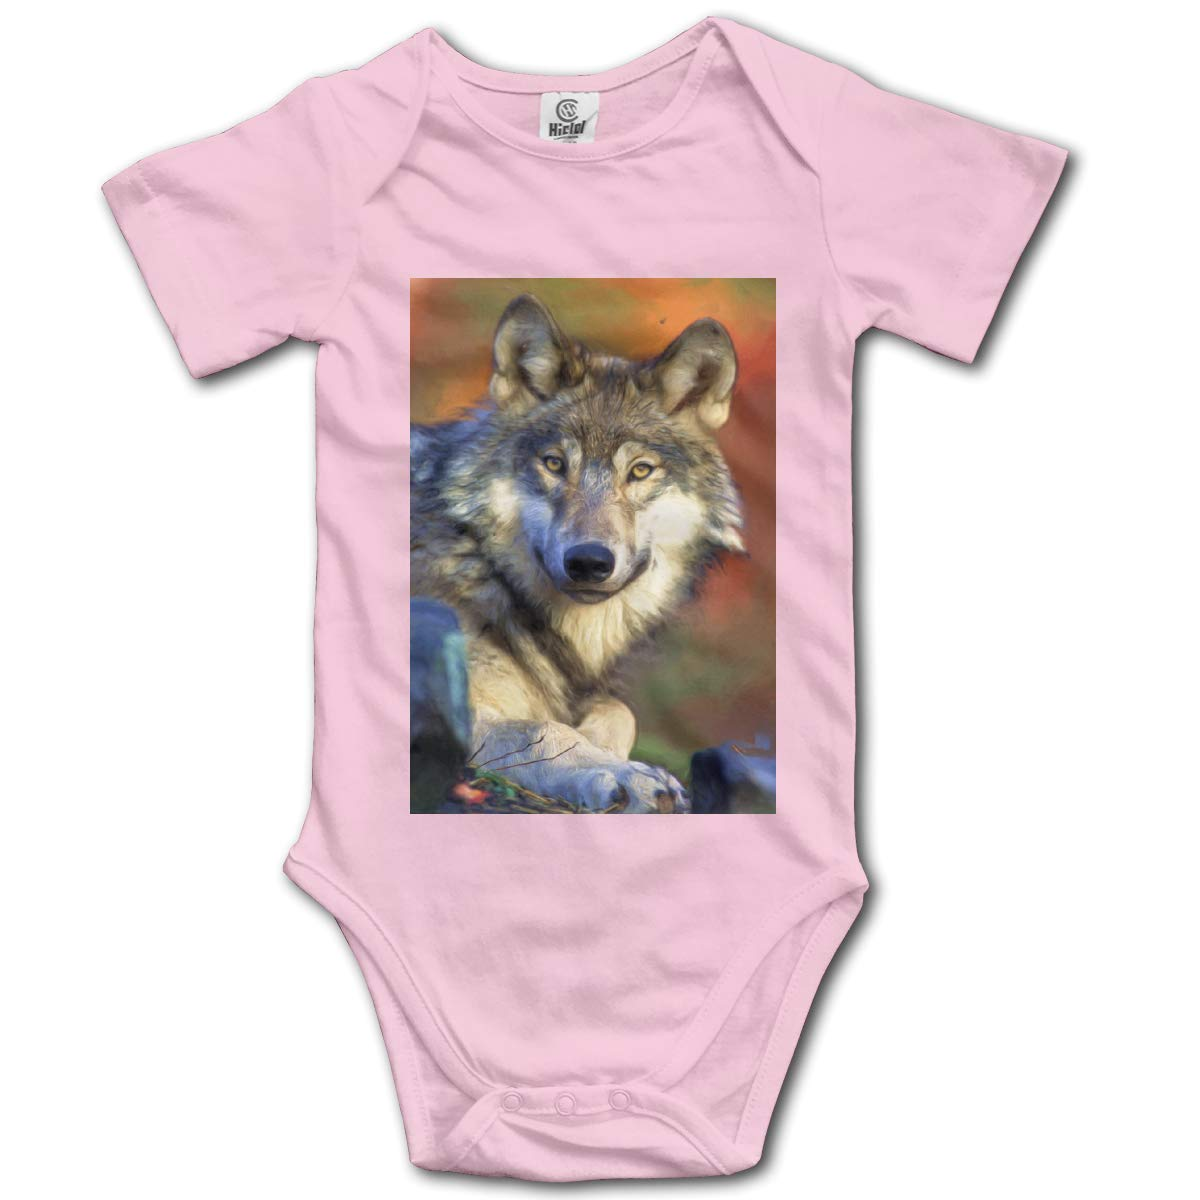 Wolfs Painting Graffiti Boys /& Girls Black Short Sleeve Romper Bodysuit Outfits for 0-24 Months